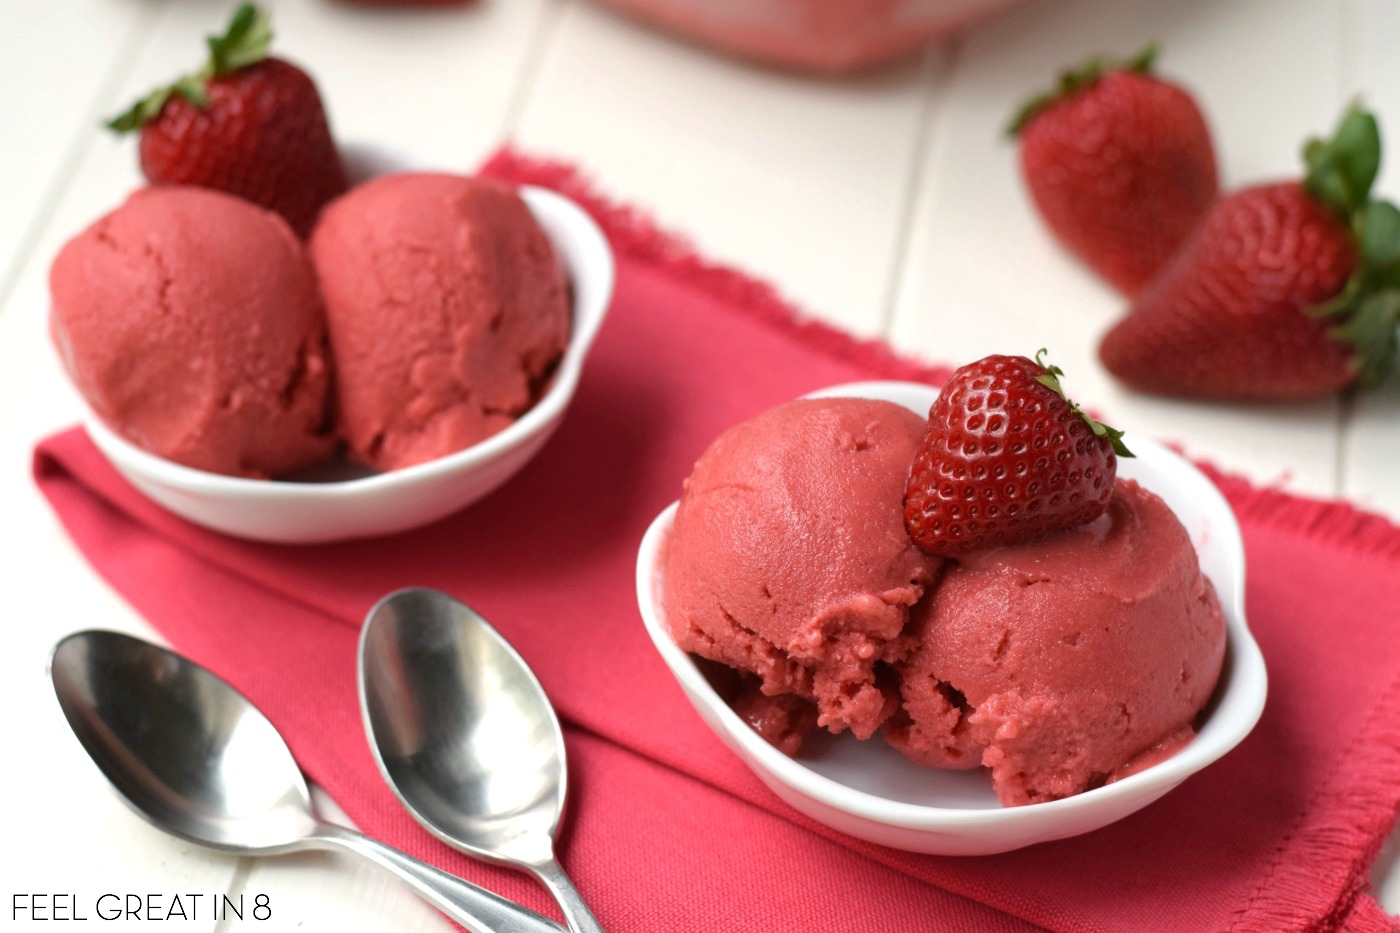 You only need 5 minutes and 4 healthy real food ingredients to make this Homemade Strawberry Frozen Yogurt - No ice cream maker required! At only 100 calories per serving, you'll love this sweet guilt-free dessert!